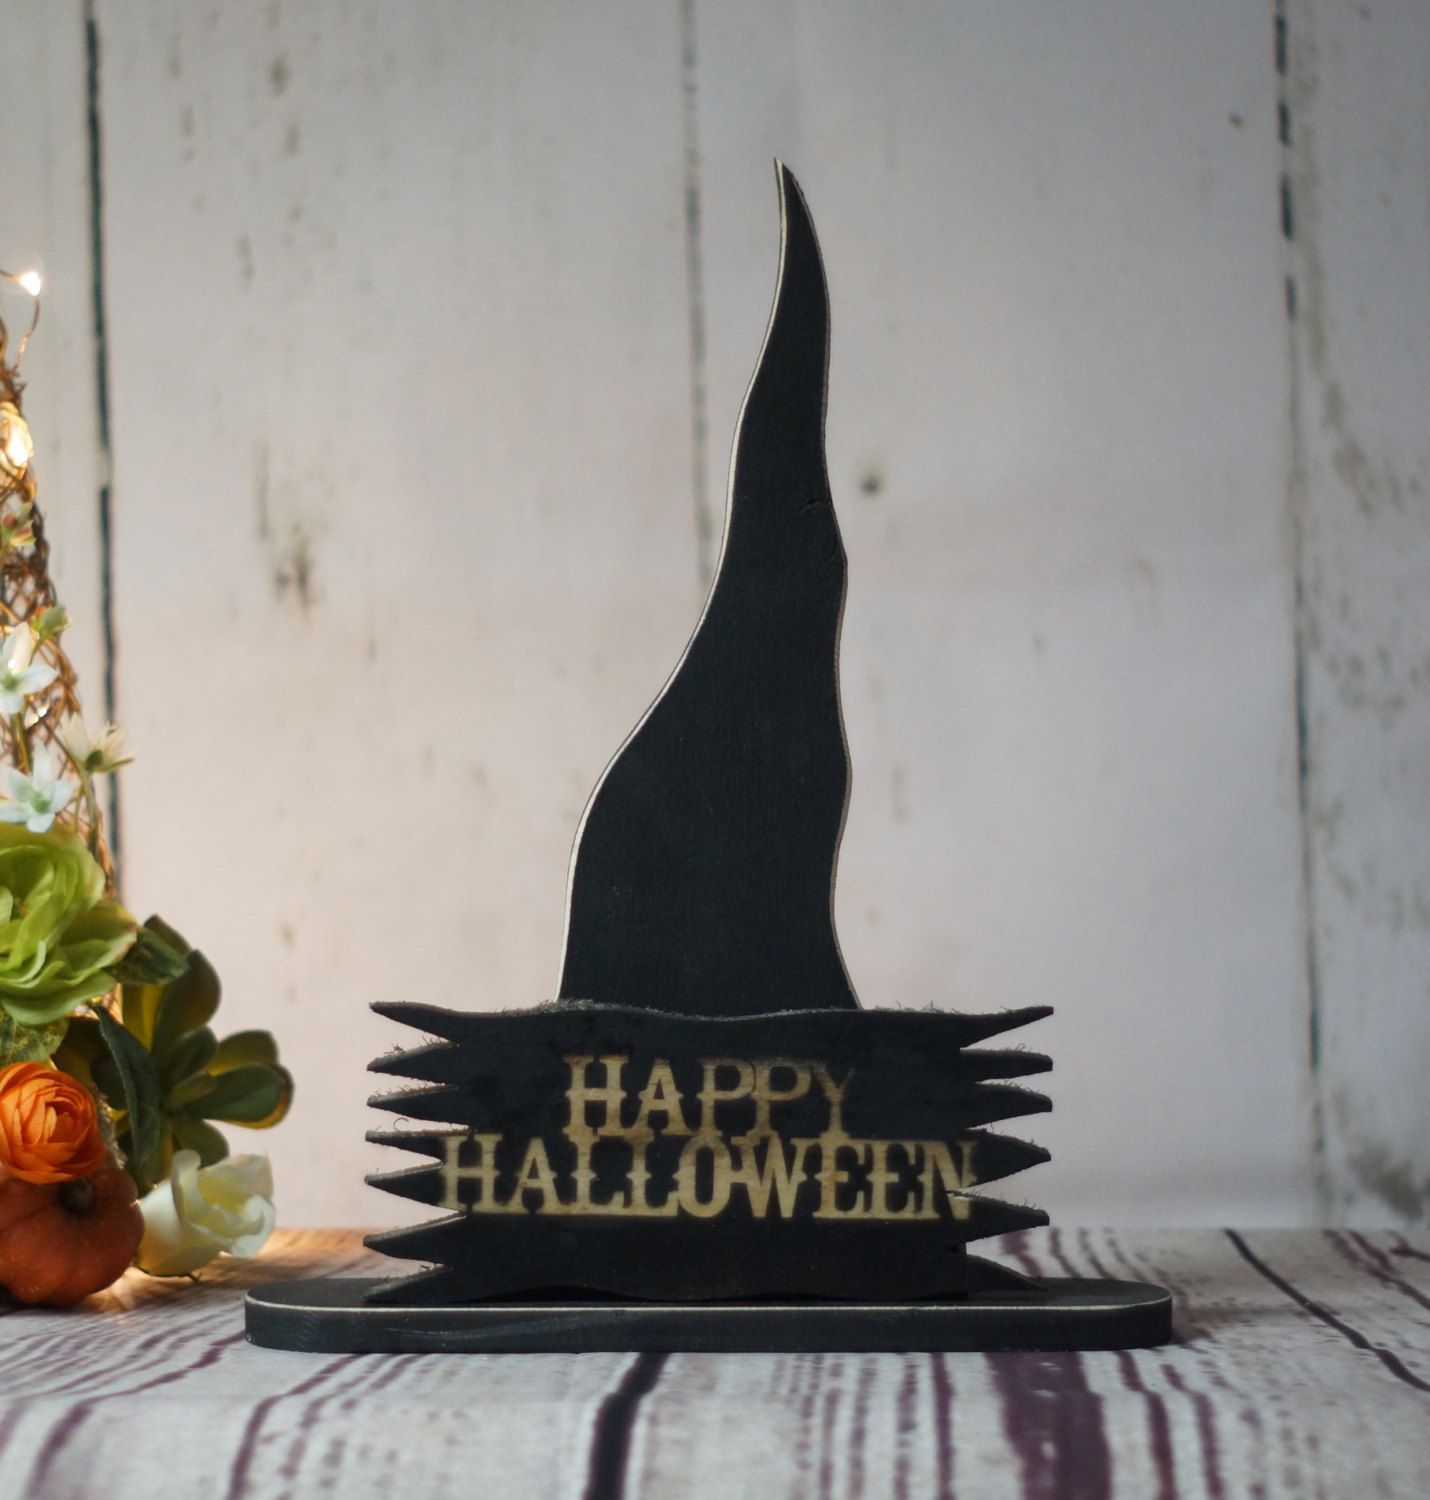 simple idee fait imprimer de cozy decor rustic decorative decorations a pour for table maison halloween pictures chambre dhalloween faire ideas enfant meme full soi decoration centerpieces size